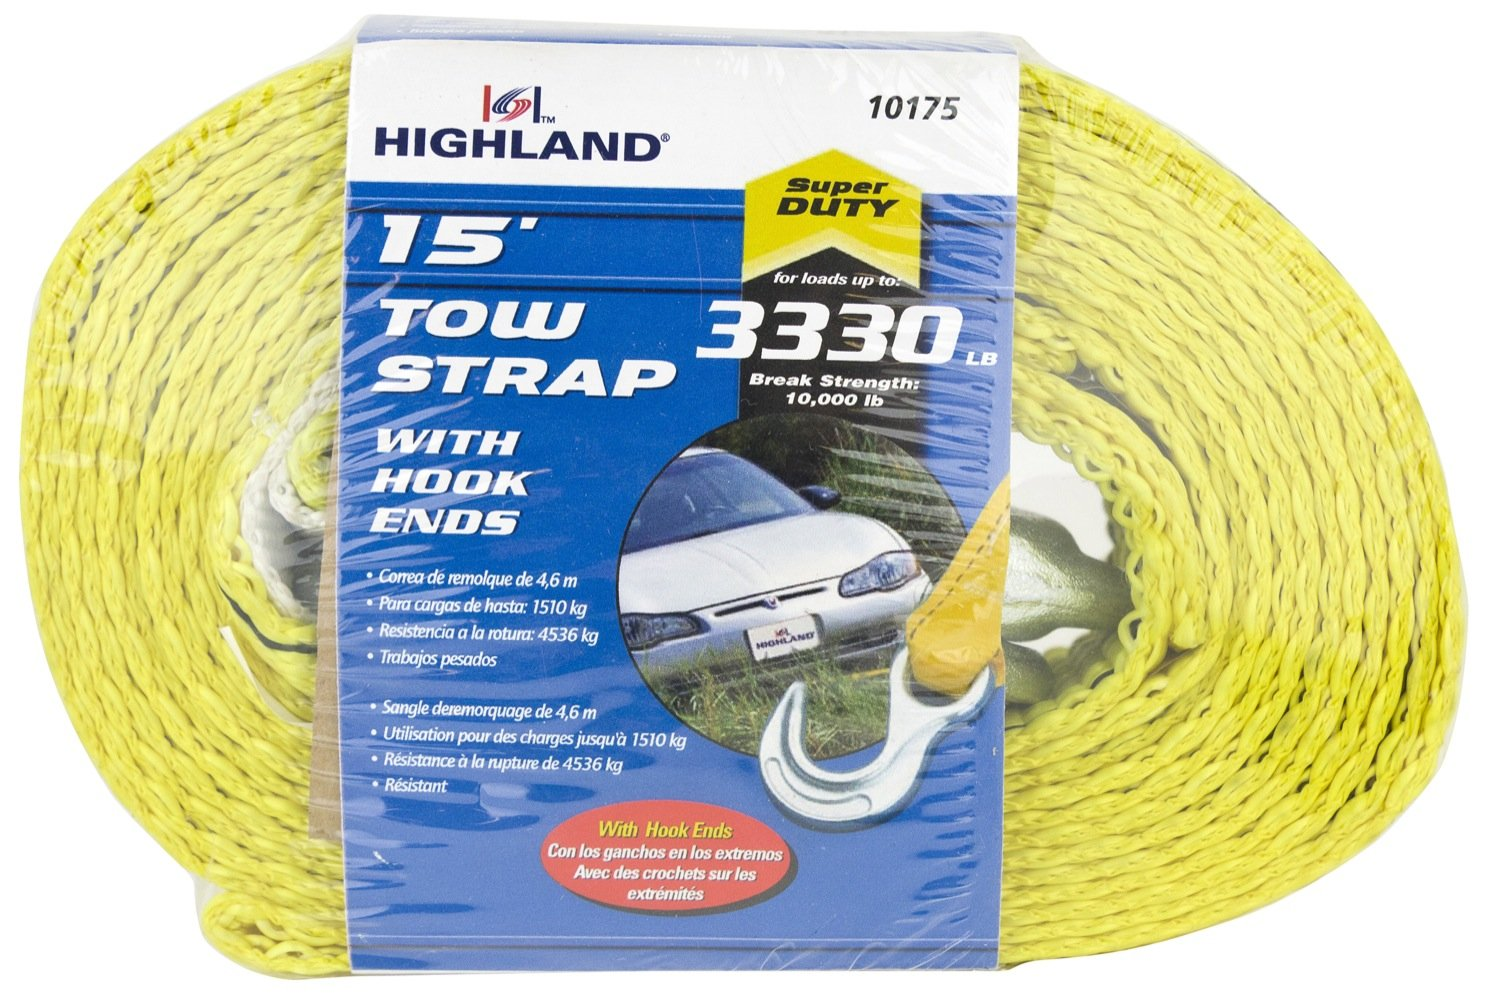 Yellow 15 Tow Strap with Hooks 1017500 Highland 1 piece BLK:10175